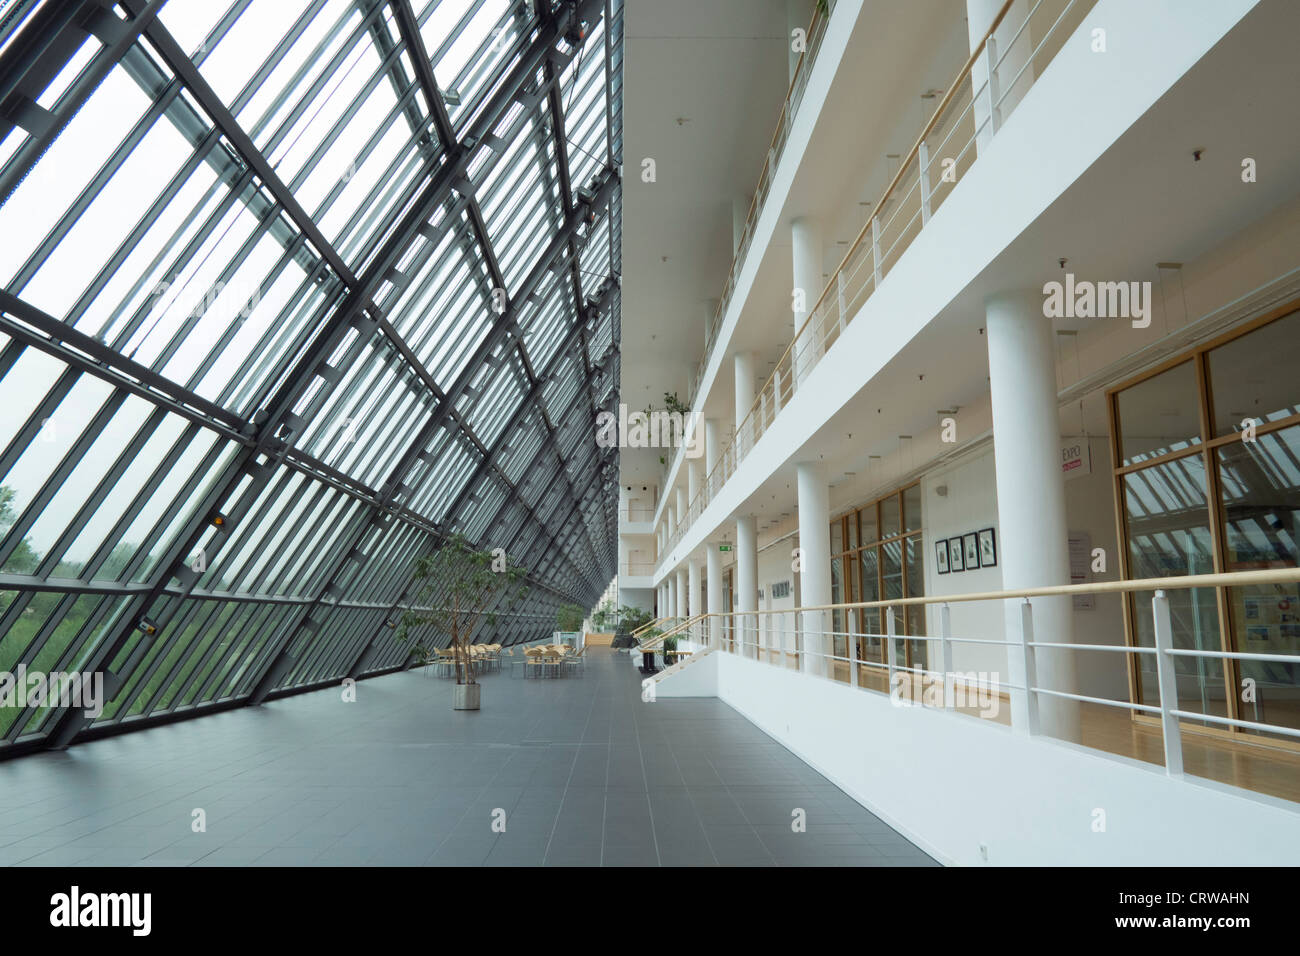 Interior of Science Park building in Gelsenkirchen in Germany - Stock Image